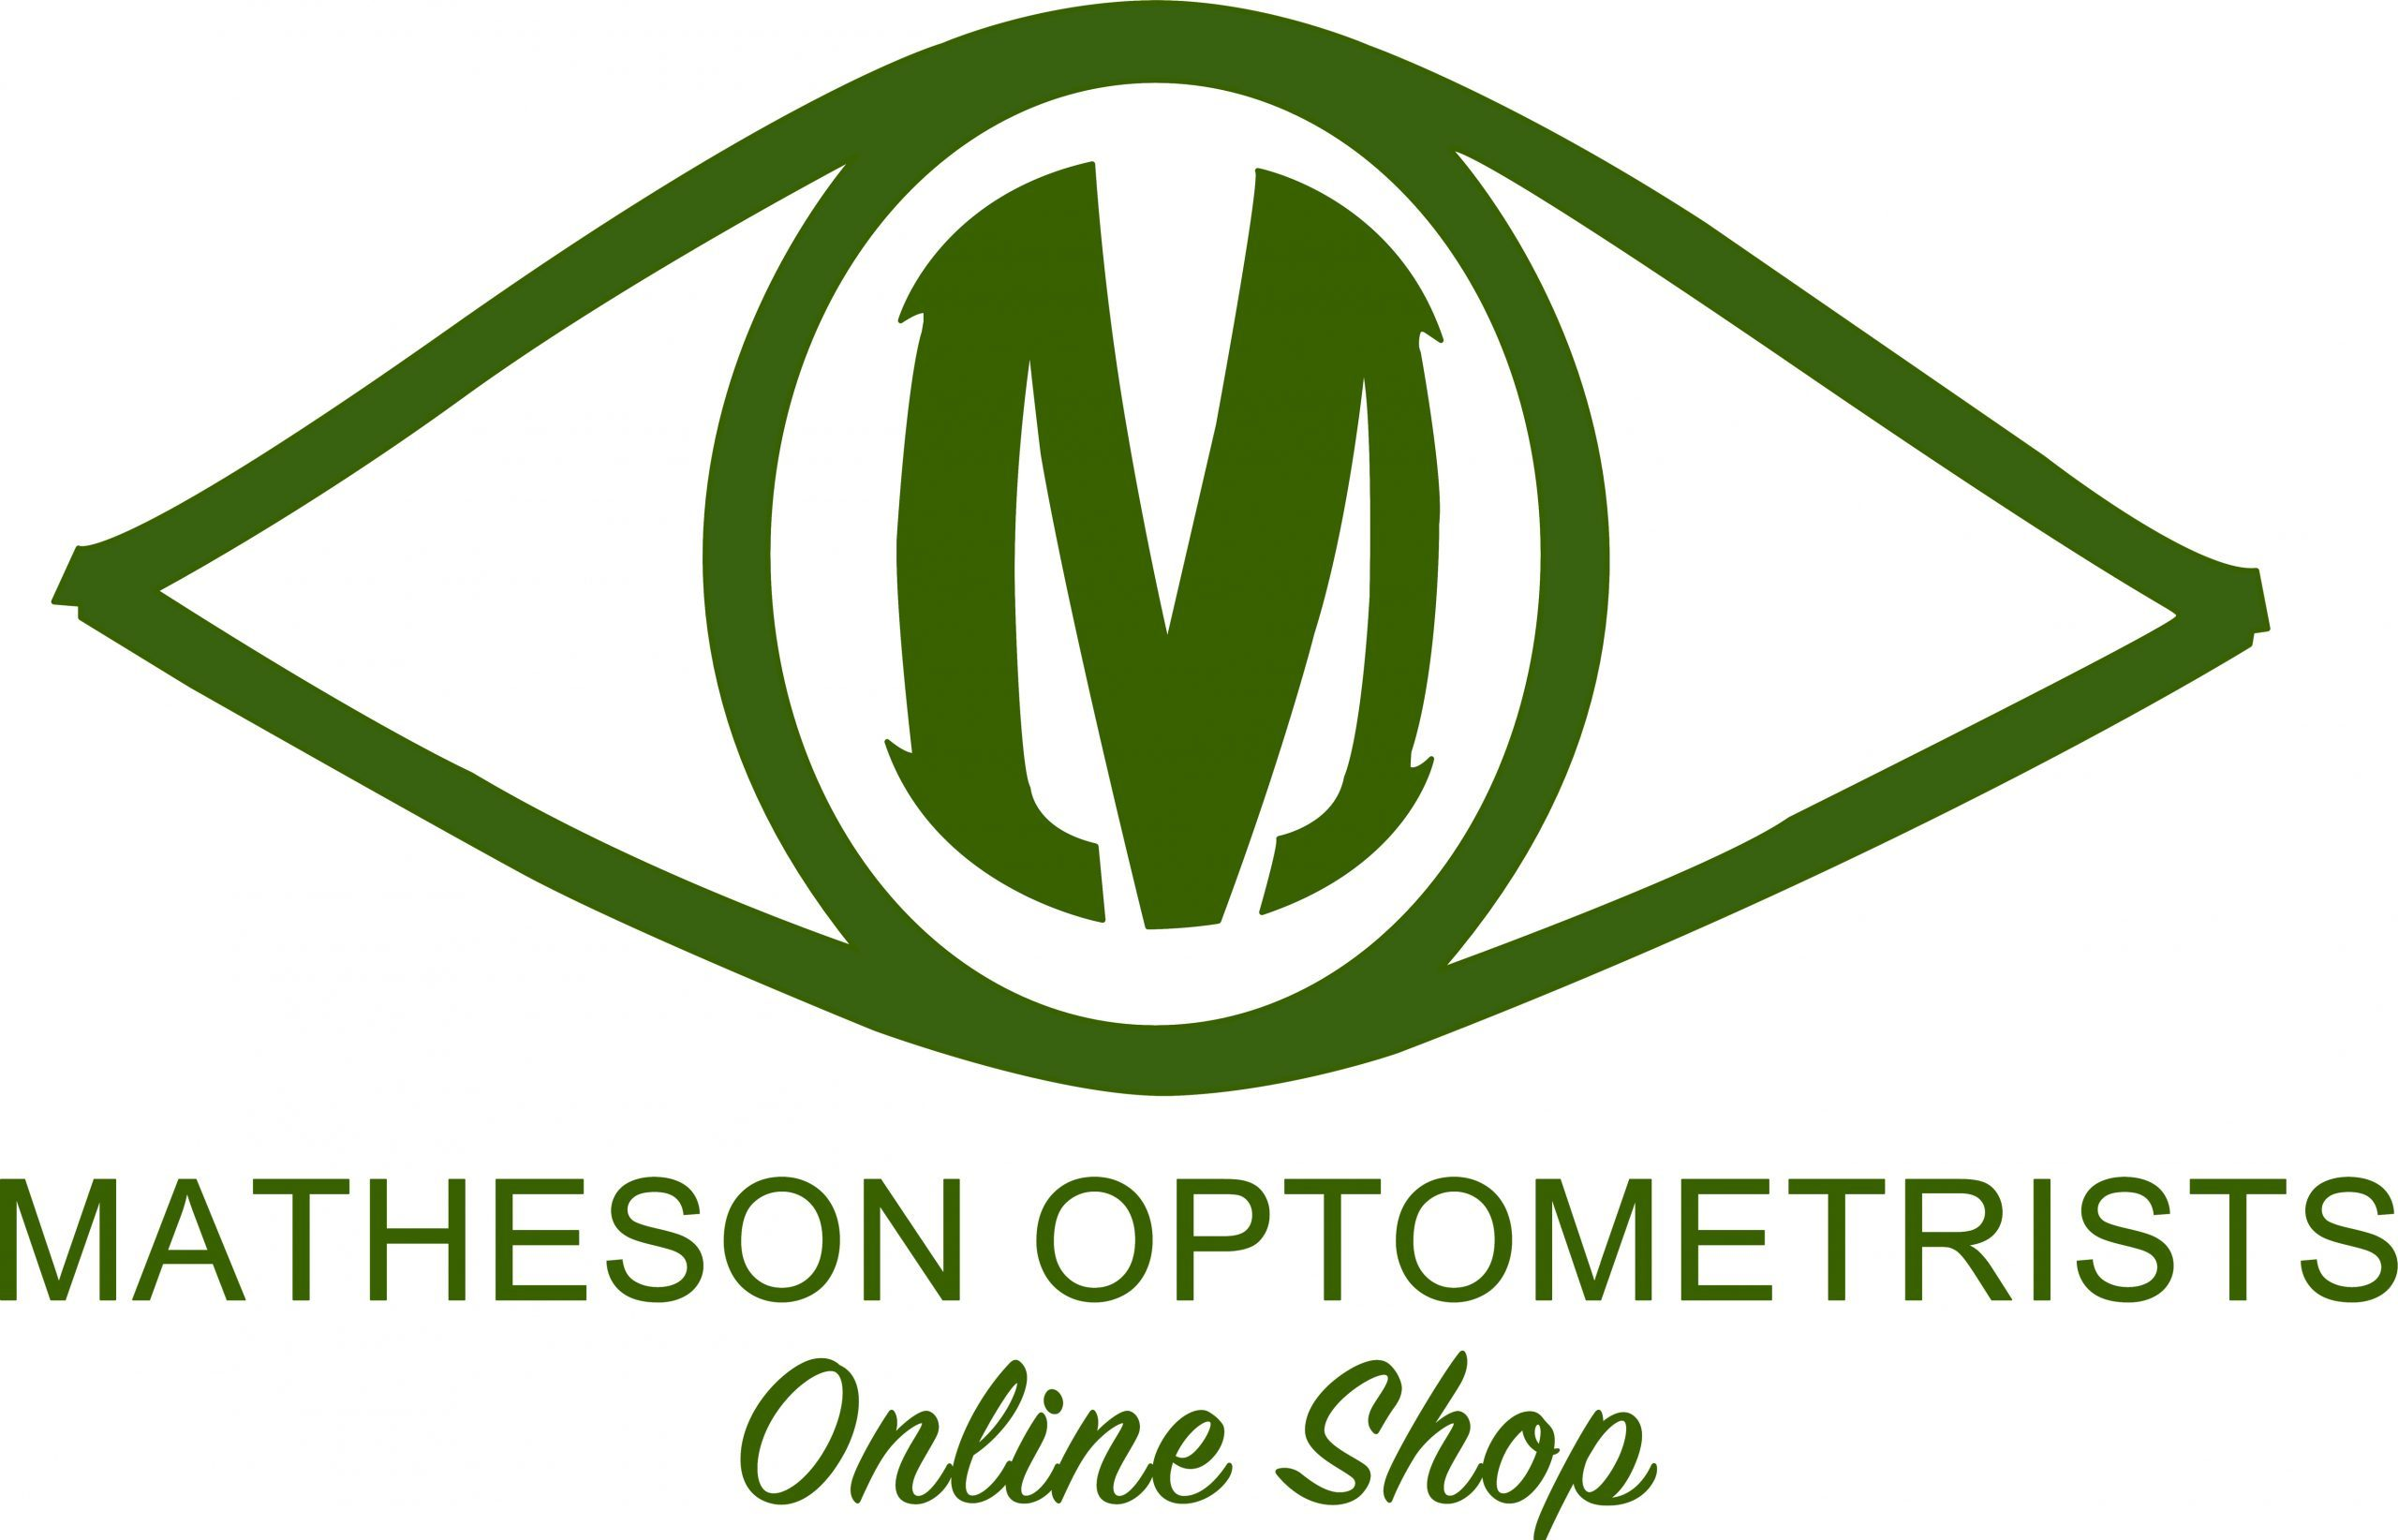 Matheson Optometrists Shop